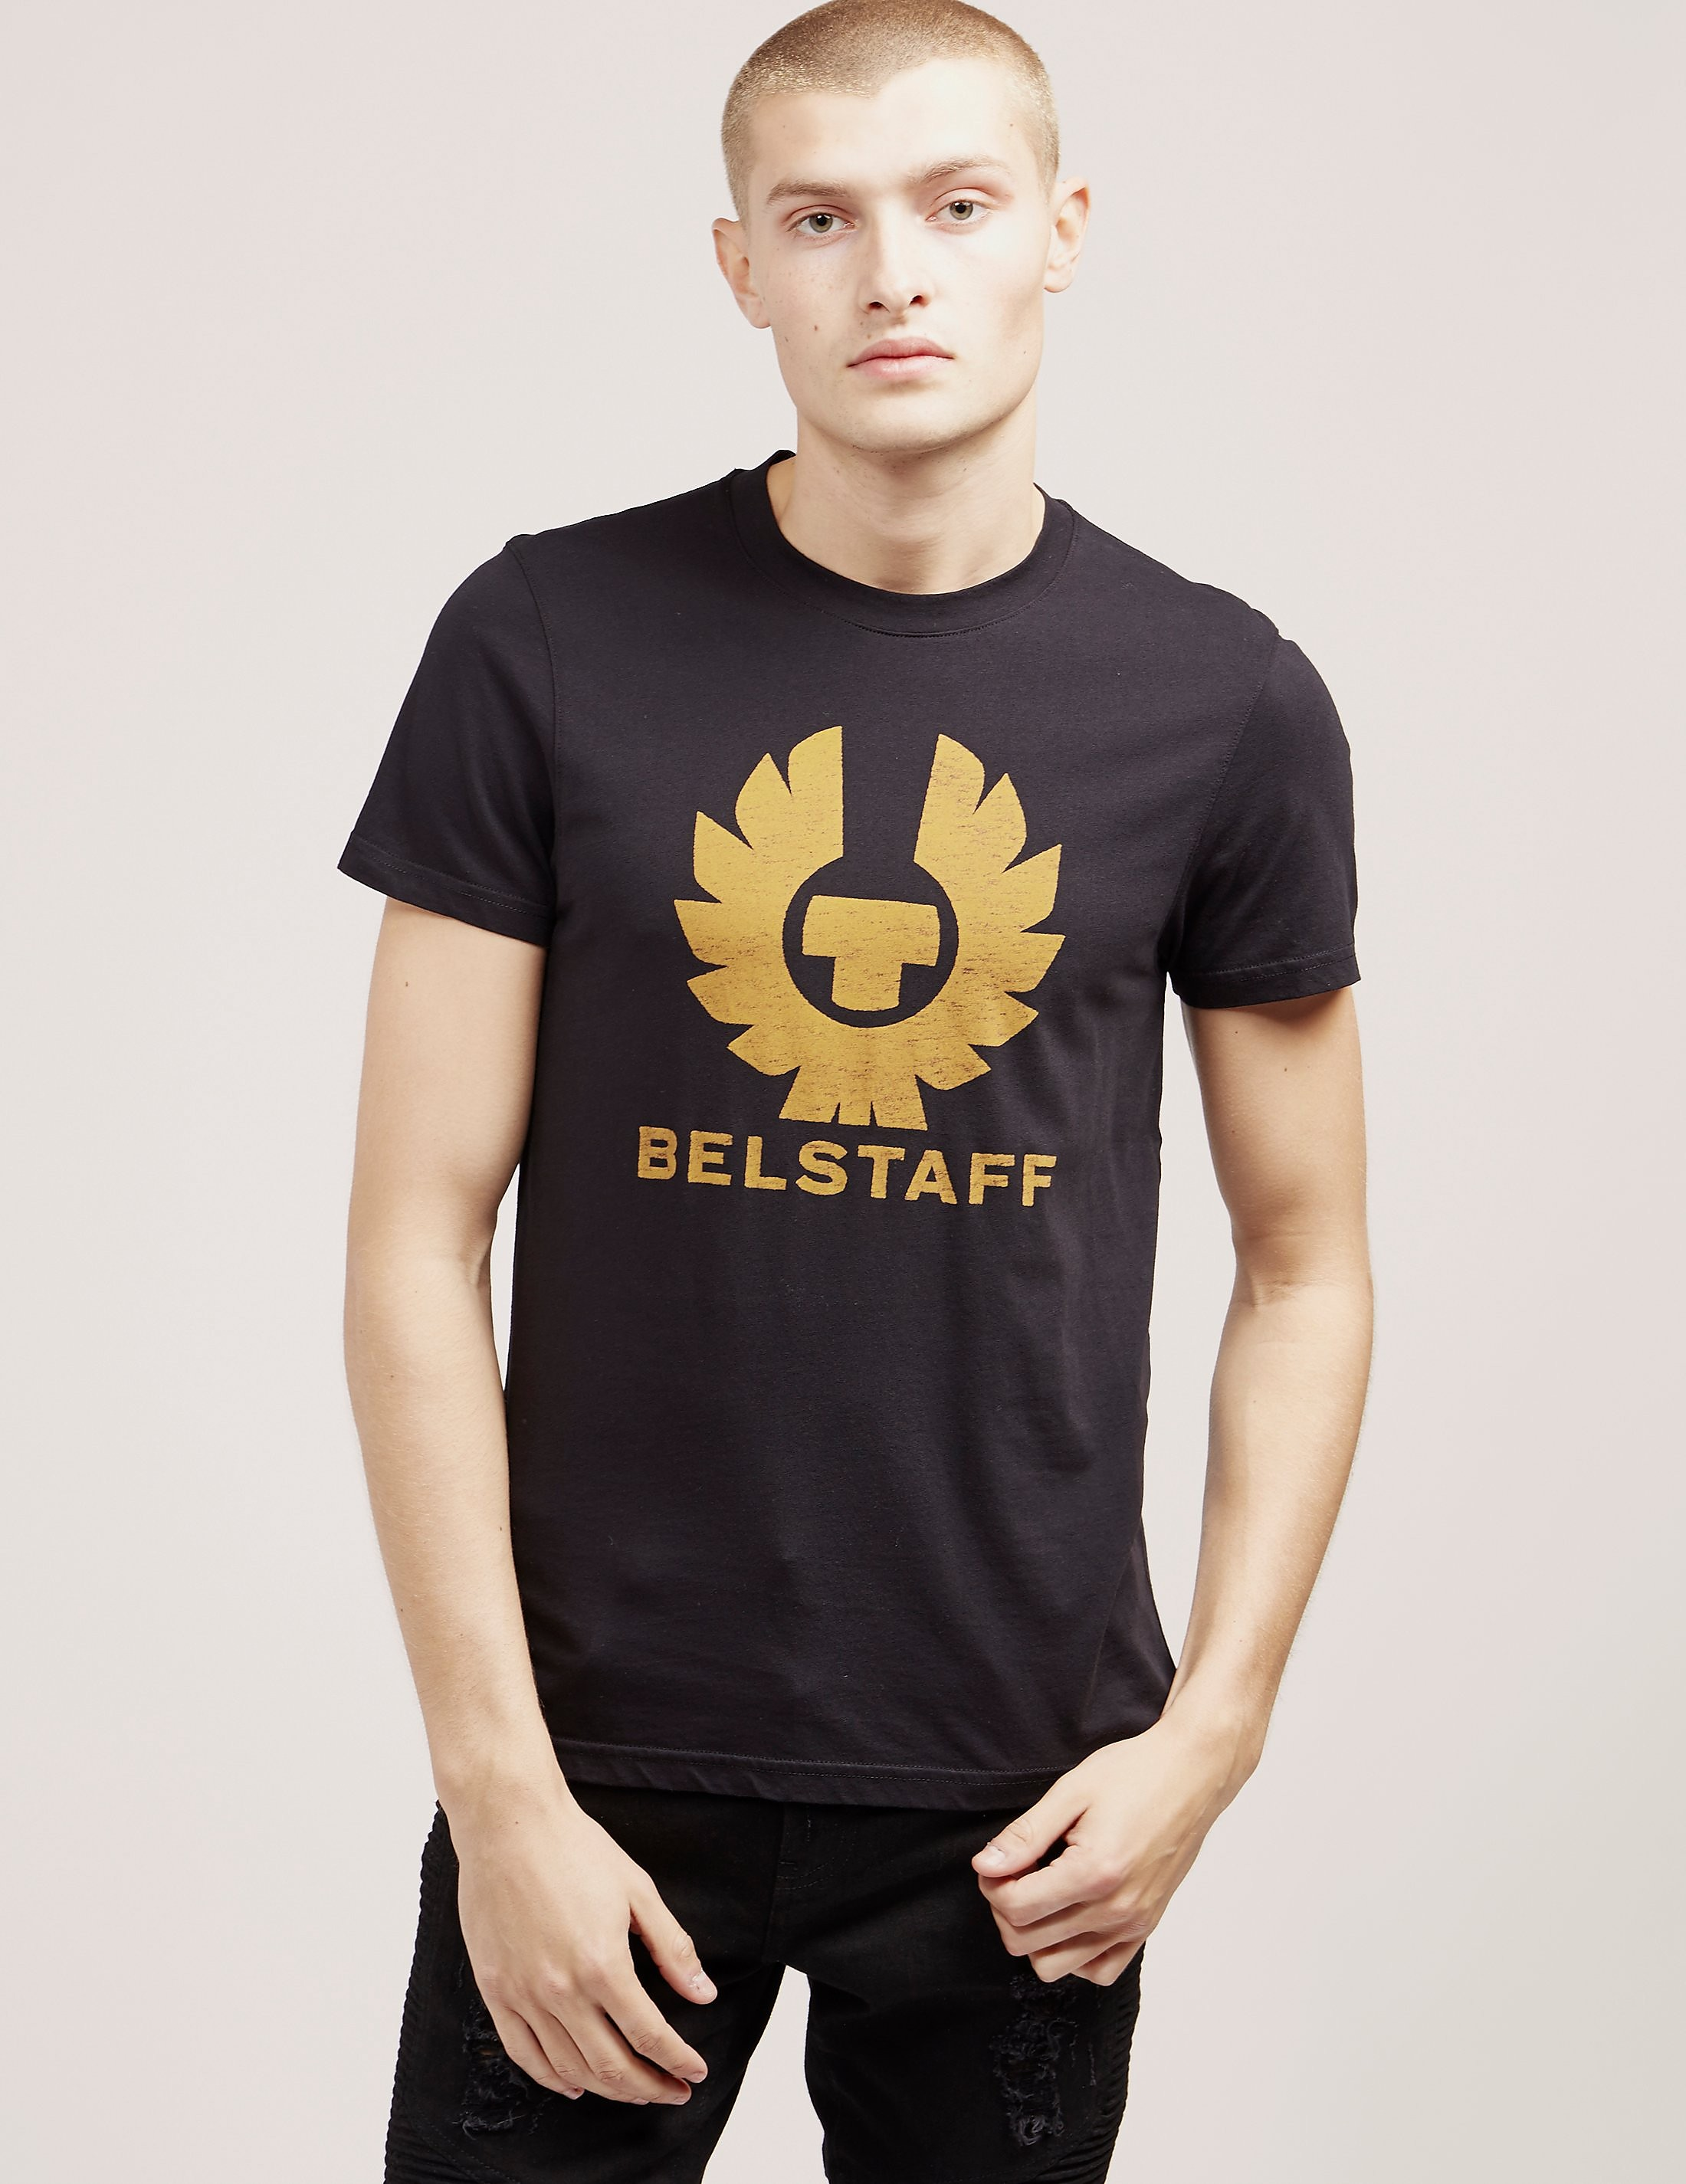 Belstaff Brand Short Sleeve T-Shirt